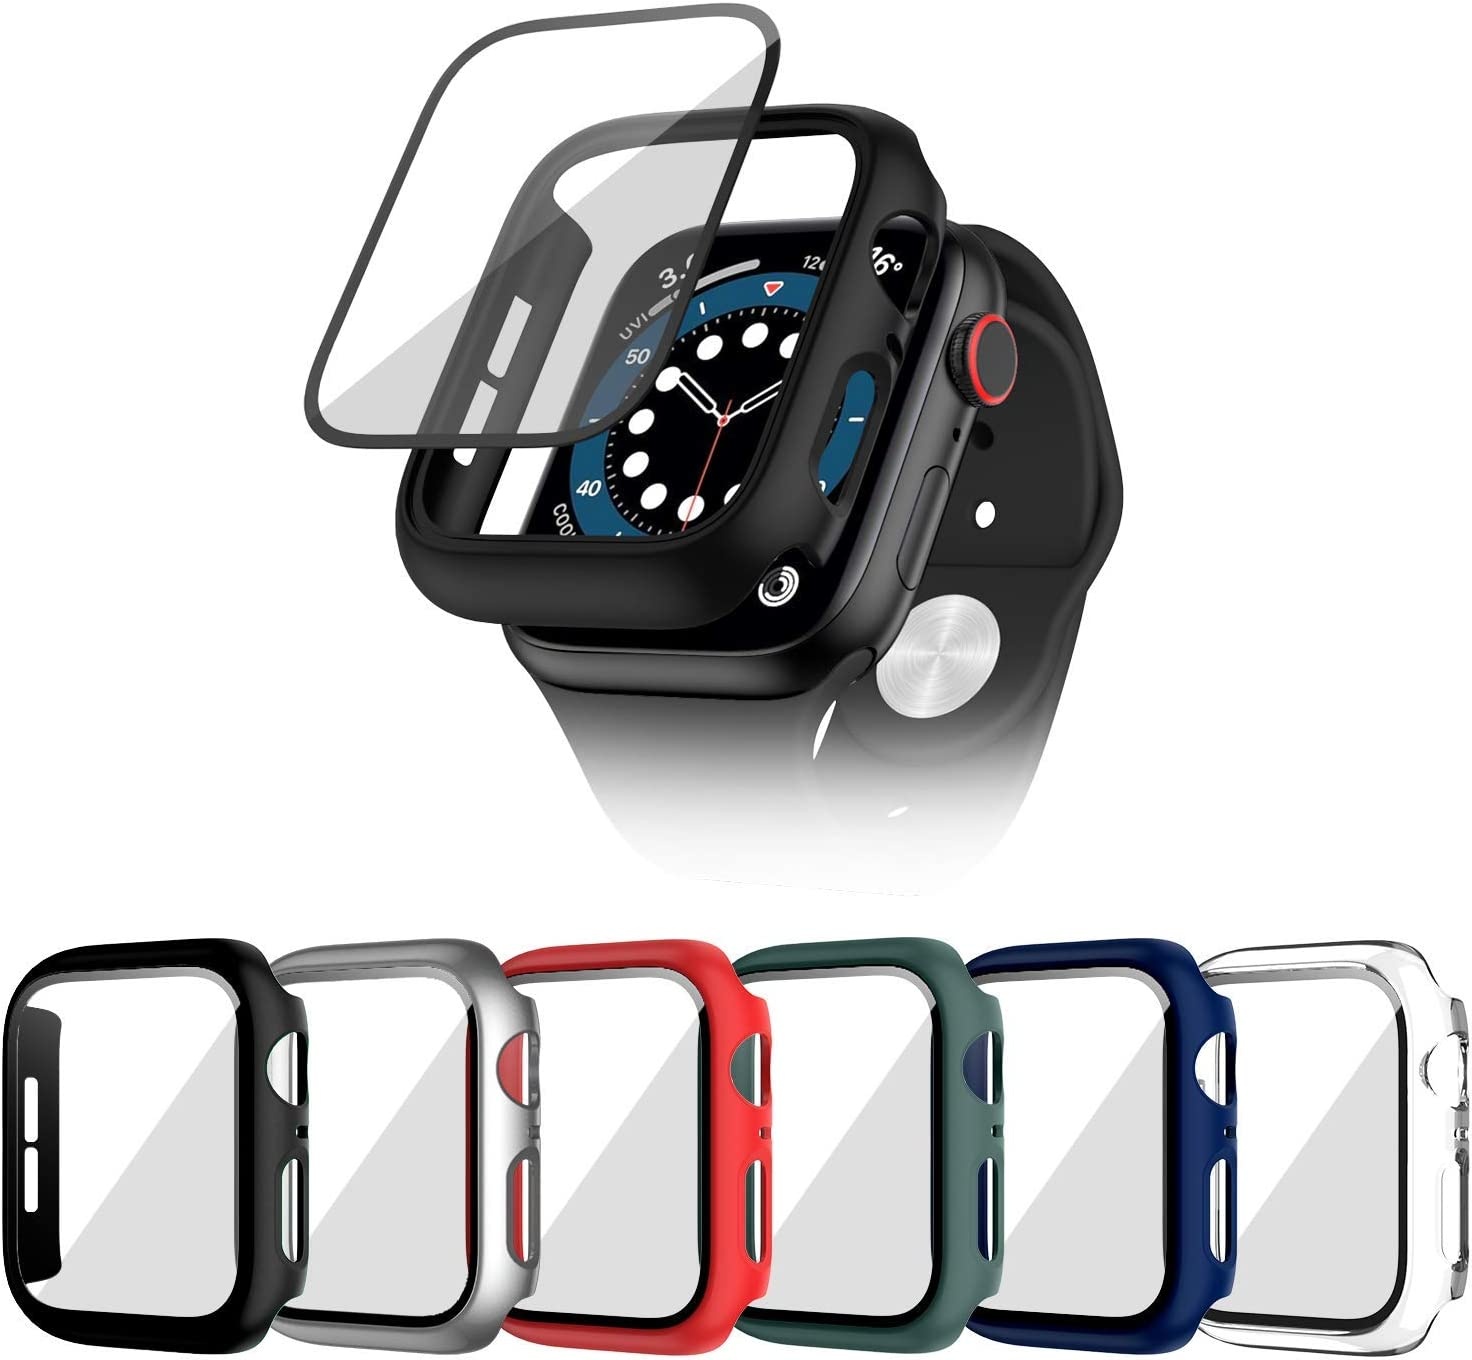 Cuteey 6 Pack for Apple Watch Series 3 42mm Hard Case with Built-in Tempered Glass Screen Protector, Overall Full Protective Bumper PC Cover for iwatch 3/2/1 42mm Accessories